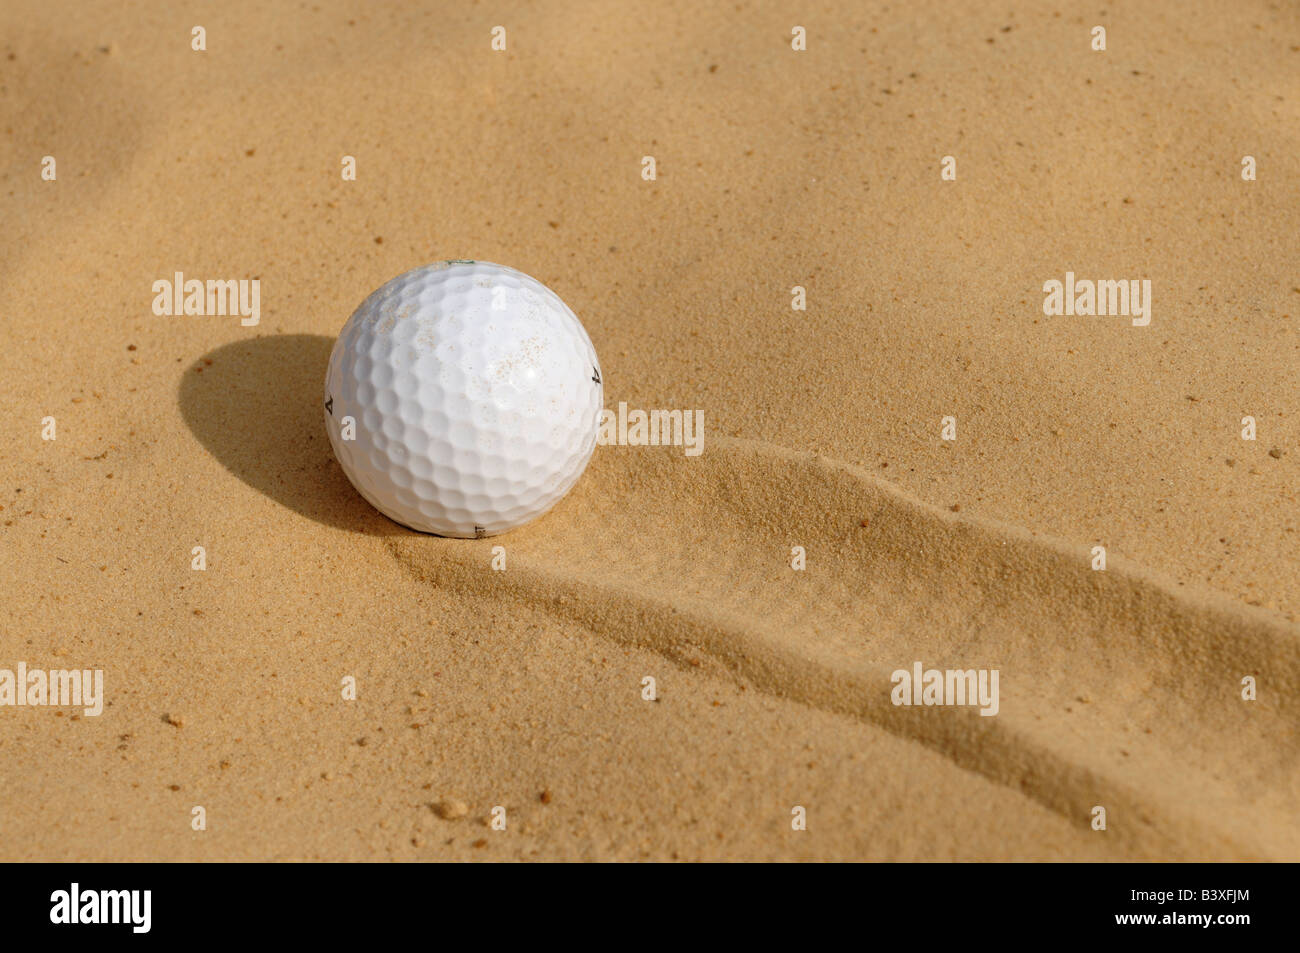 Golf ball in a bunker - Stock Image